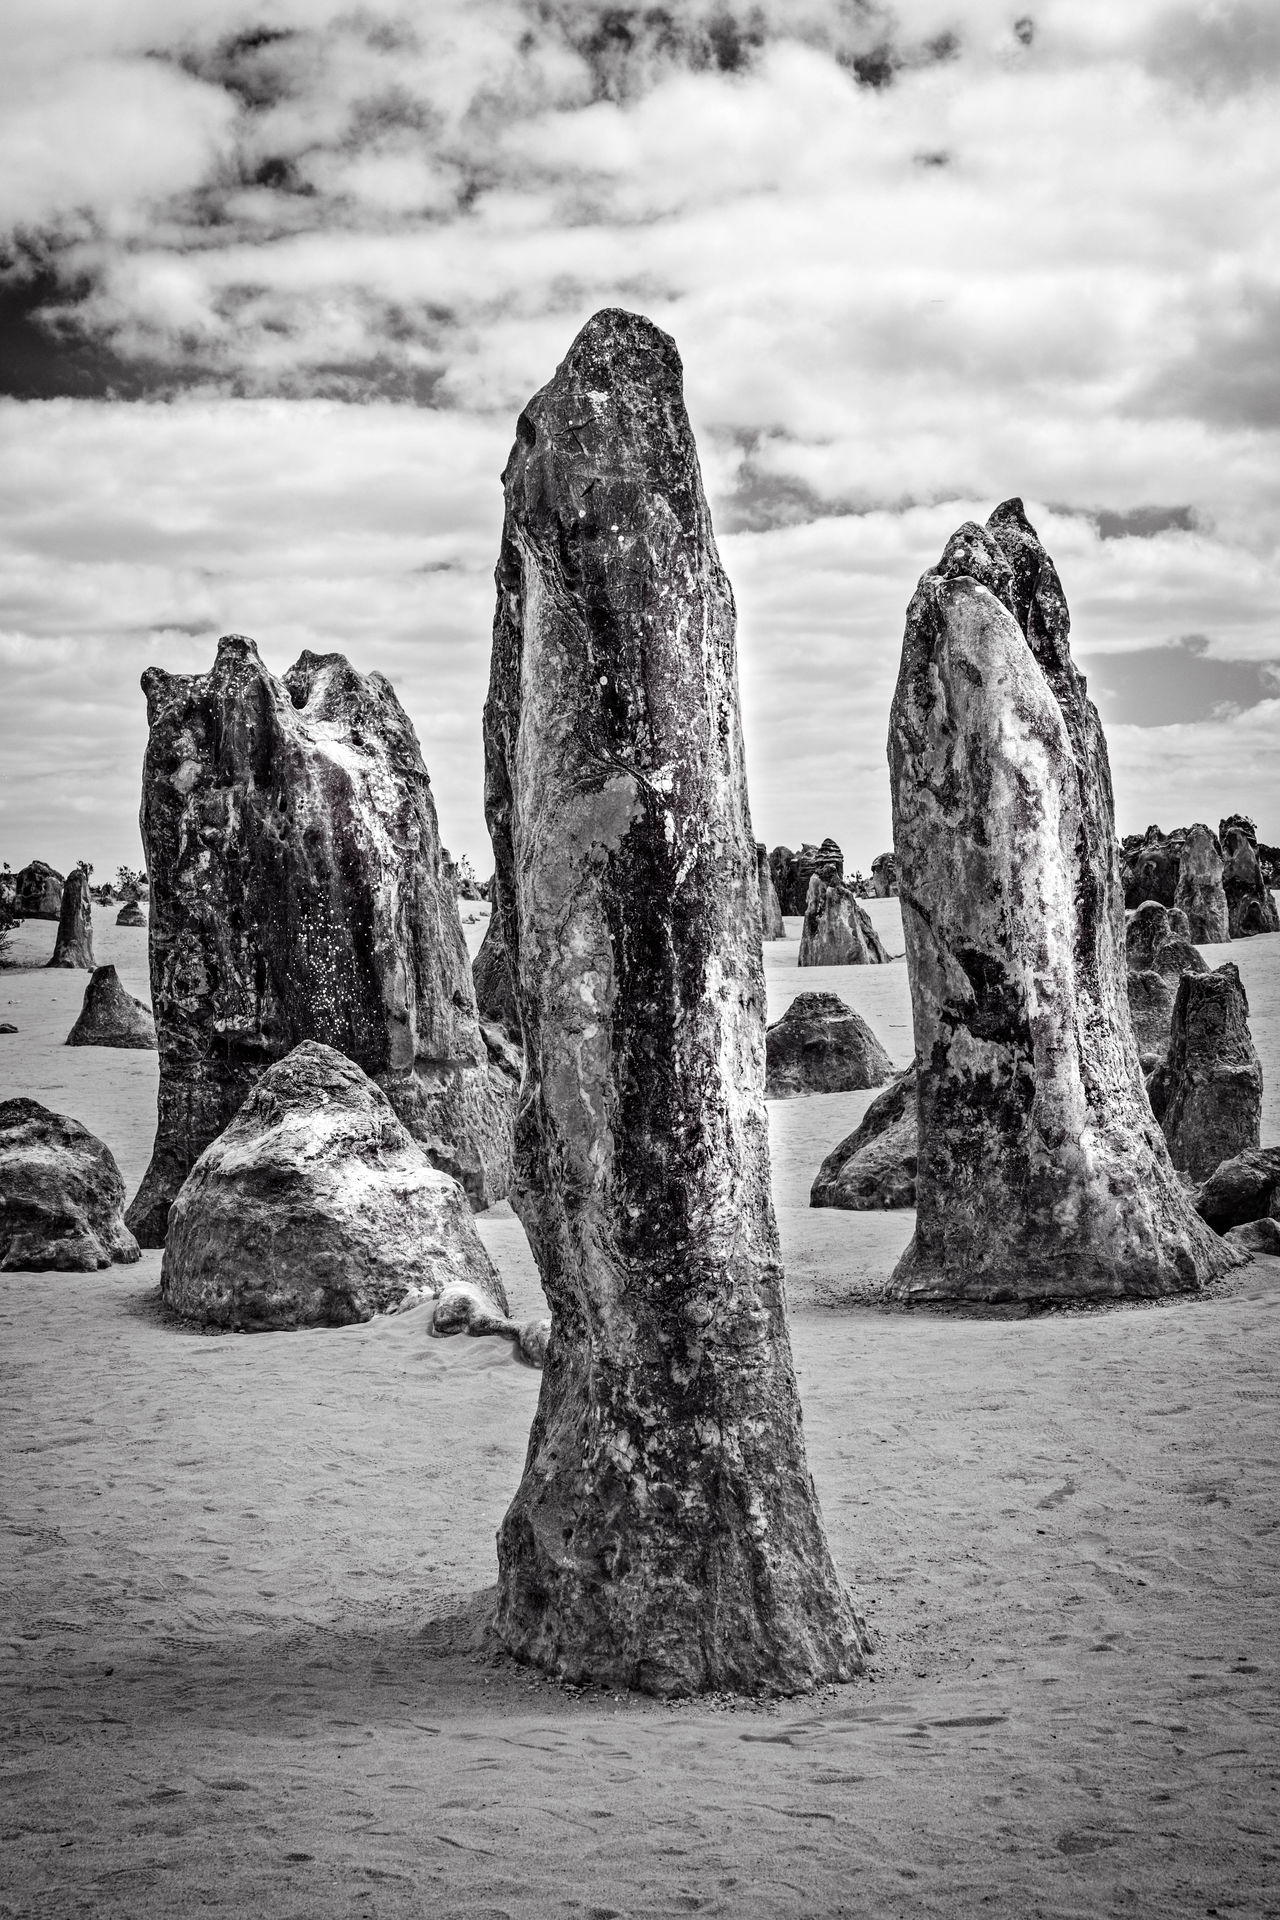 Pinnacles Desert, Western Australia - petrified trees?! 5d4 Australia Beauty In Nature Black & White Black And White Blackandwhite Canon Canon 5d Mark 4 Cloud - Sky Contrast Day Monochrome Nature No People Outdoors Petrified Pinnacles Desert Pinnacles National Park Rock - Object Sky Tranquility Western Australia